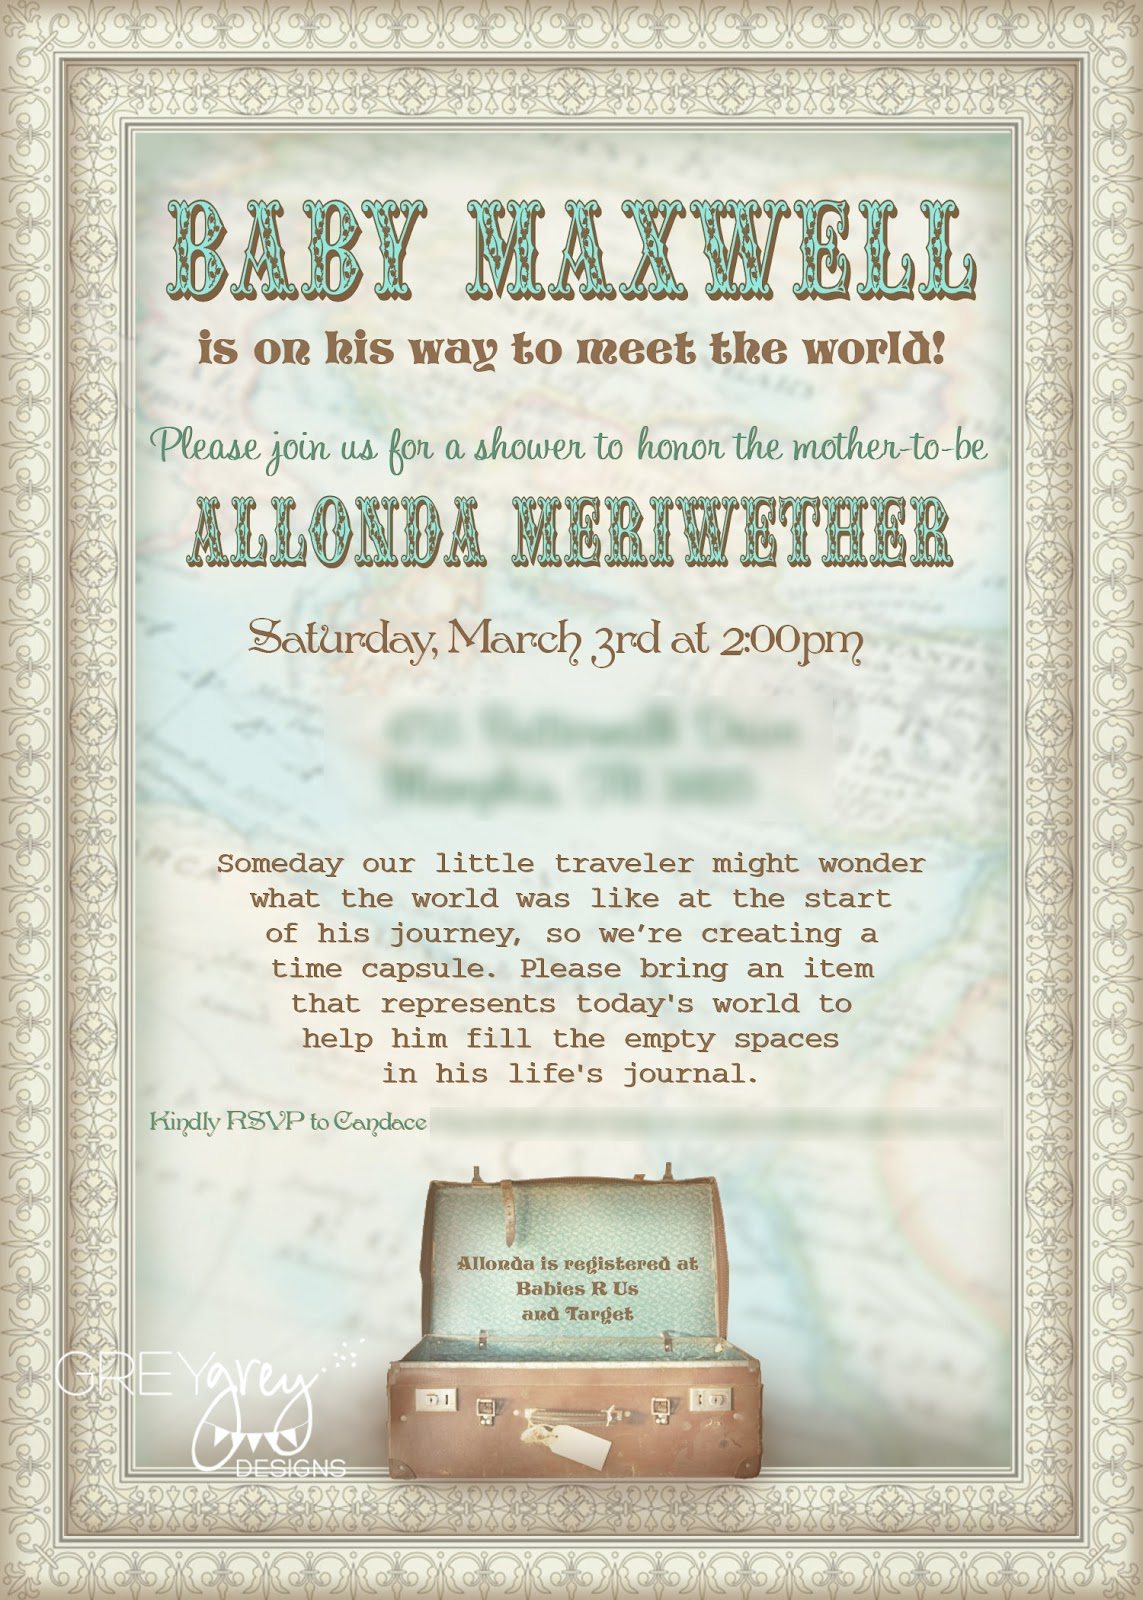 GreyGrey Designs: {My Parties} Boy Meets World Baby Shower